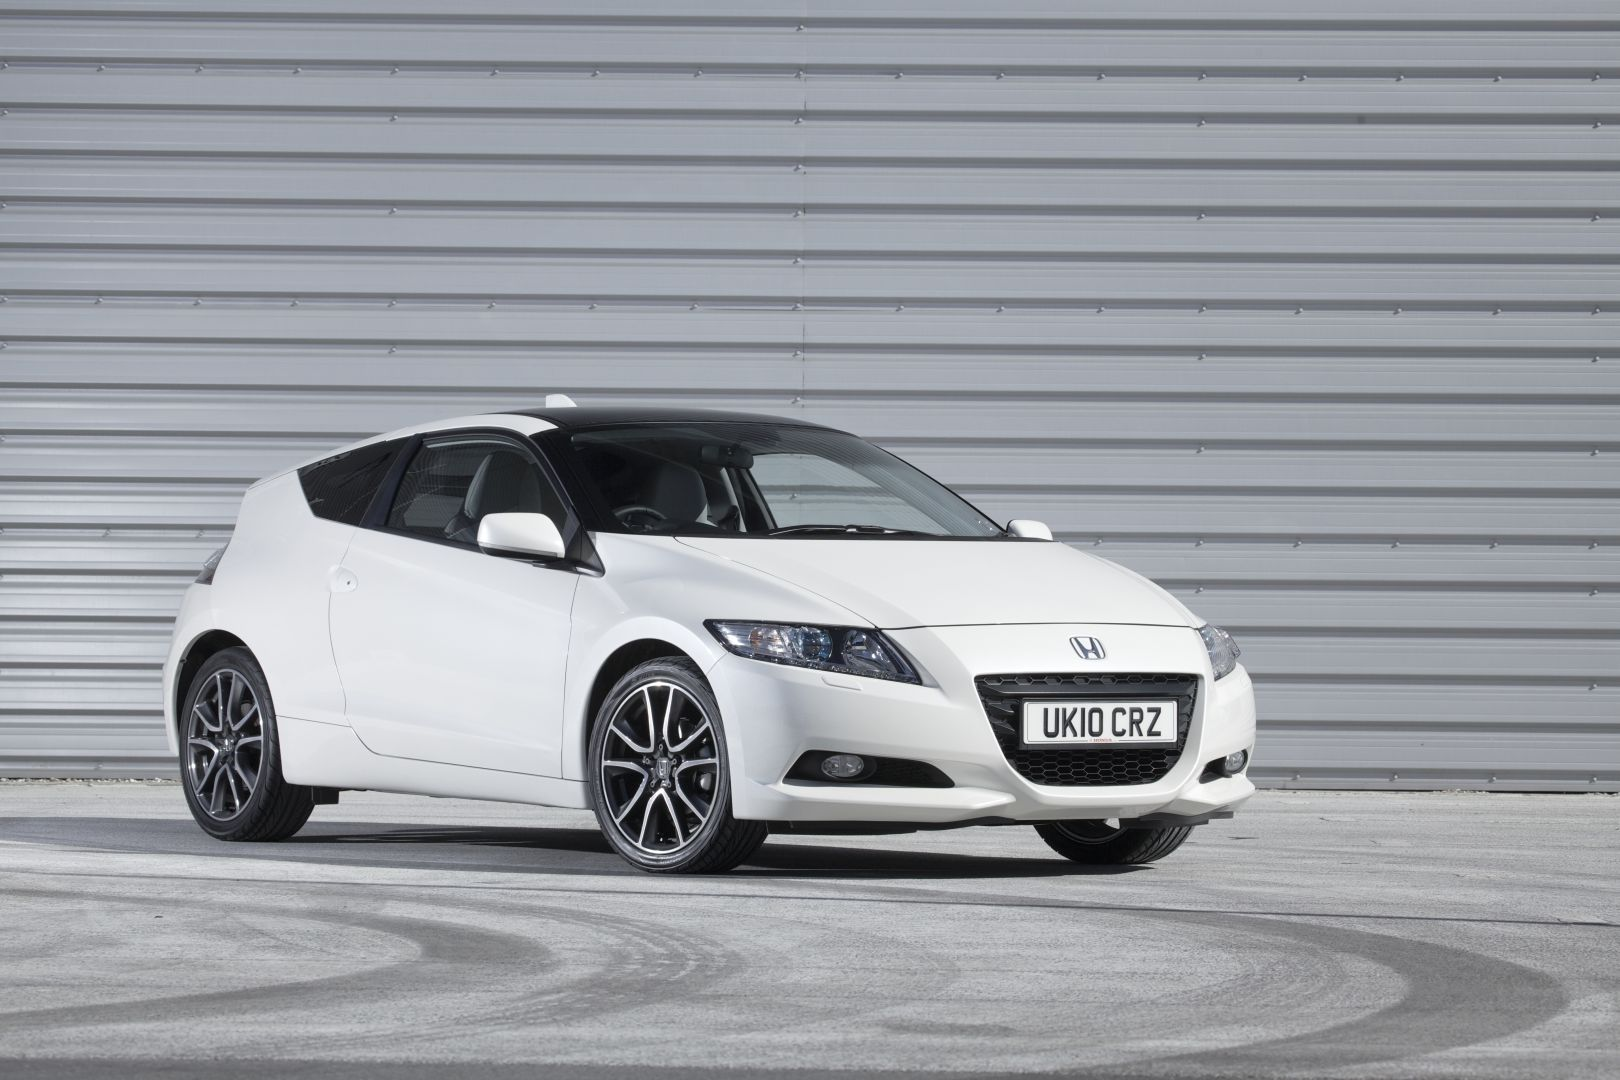 honda cr z specs photos 2010 2011 2012 2013 2014 2015 2016 2017 2018 autoevolution. Black Bedroom Furniture Sets. Home Design Ideas